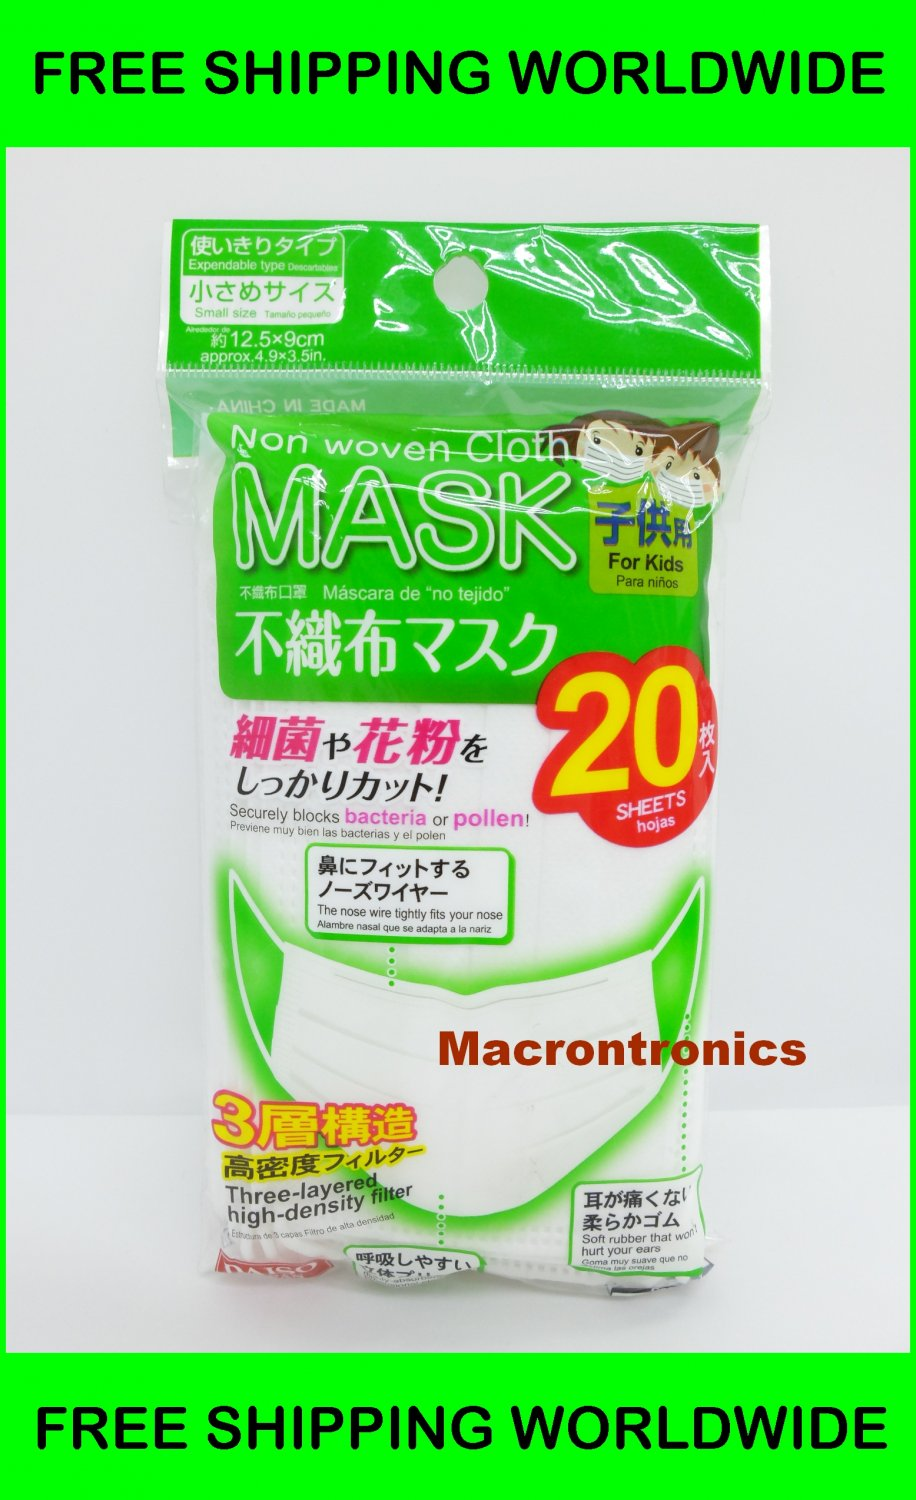 JAPAN IMPORT - Disposable Surgical Medical Earloop Face Dust Mask 20pcs For Kids